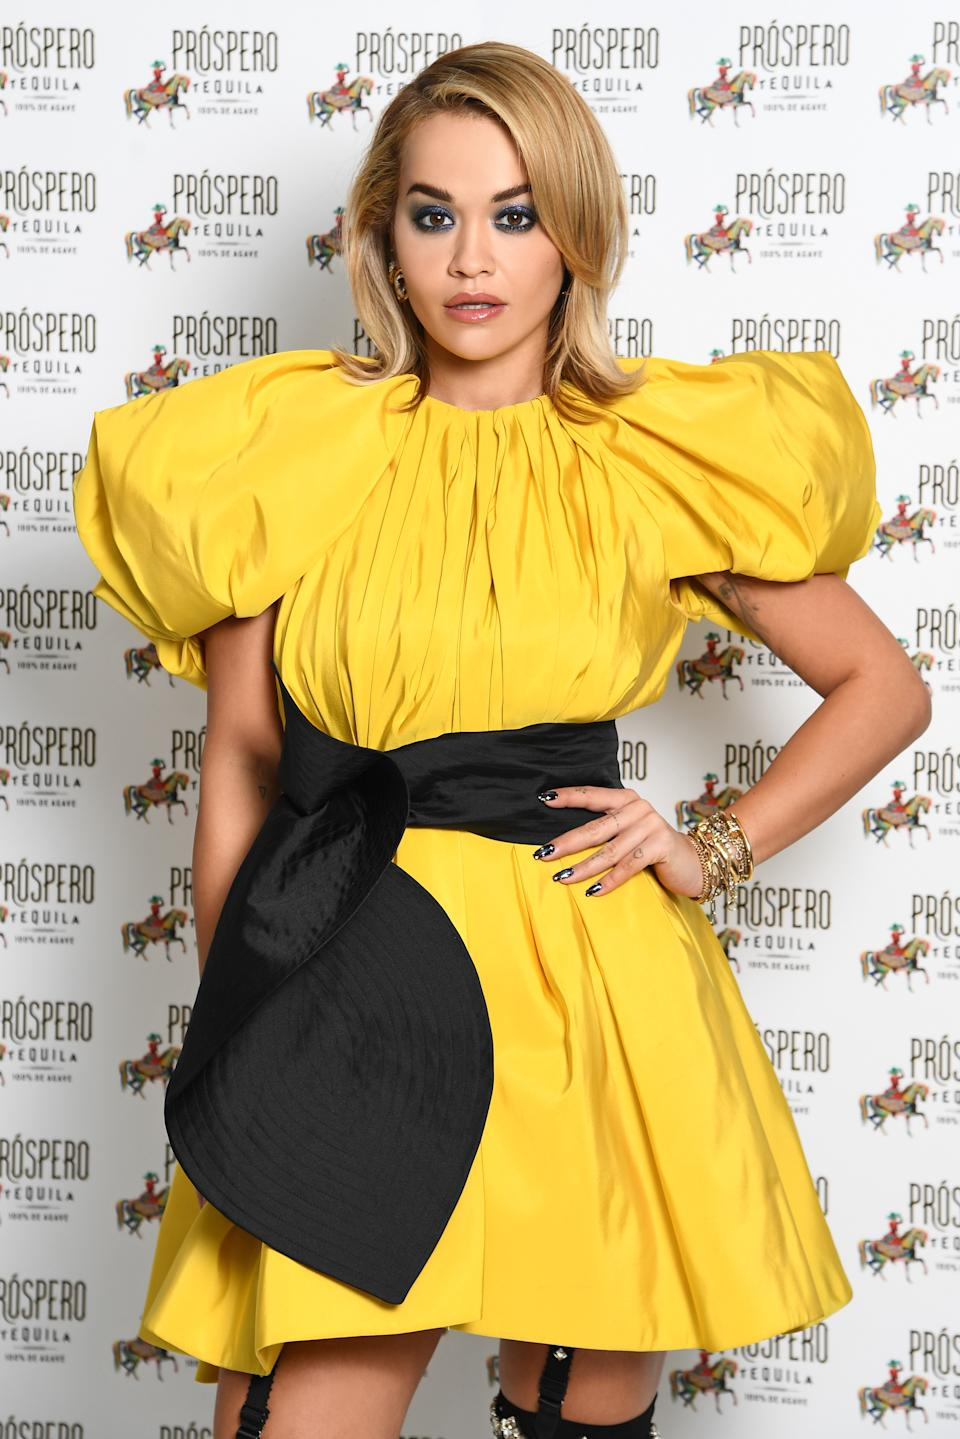 Rita Ora poses during the Prospero Tequila UK Launch on November 23, 2020 in London, England. (Photo by Gareth Cattermole/Getty Images for ABA)